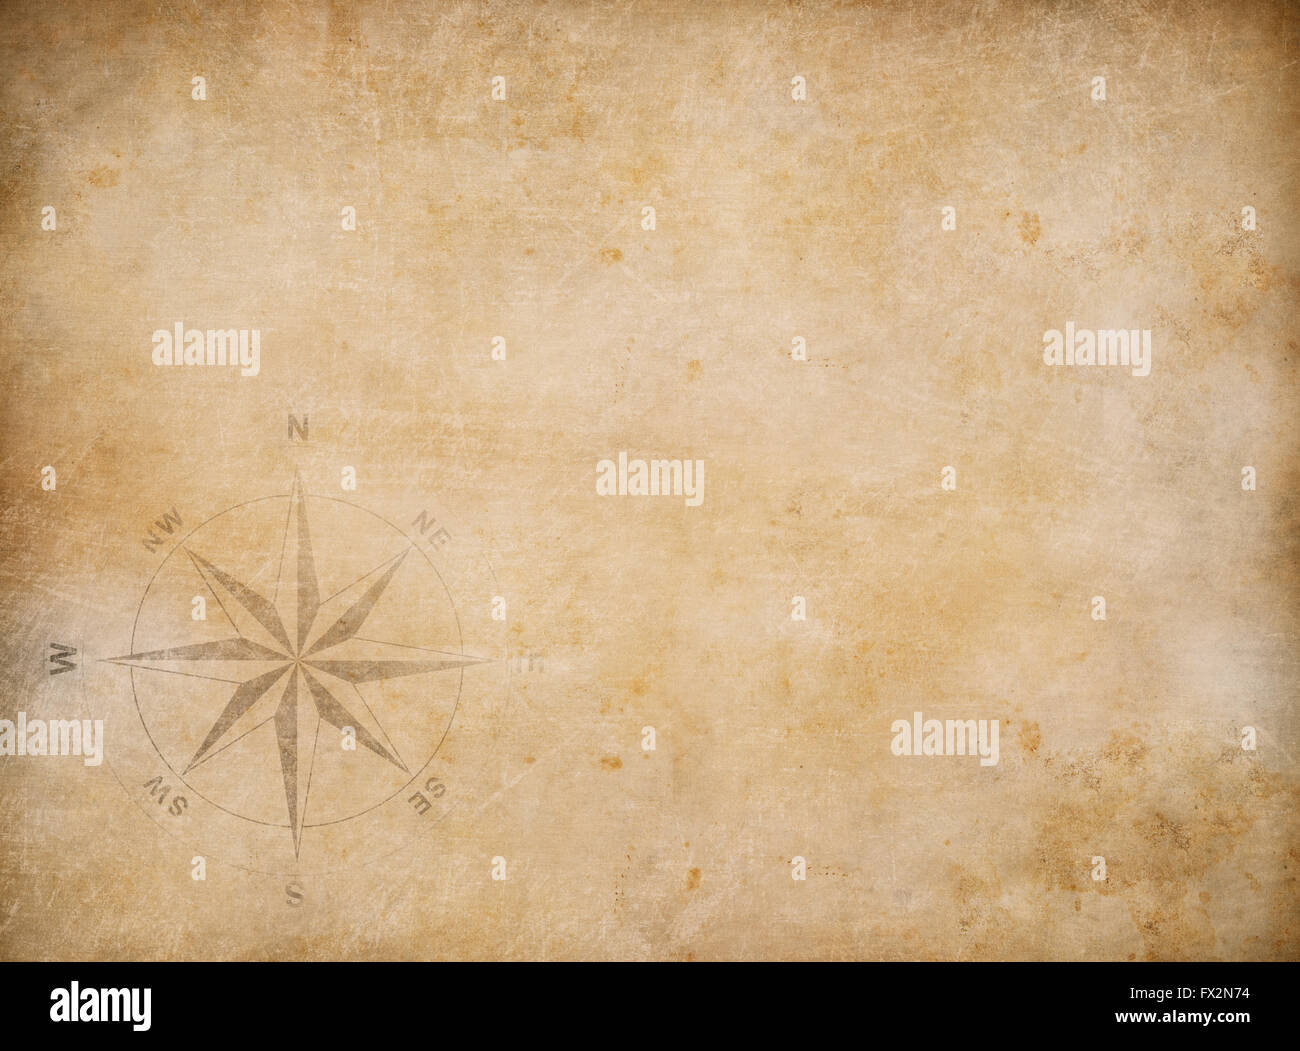 Blank Map Stock Photos   Blank Map Stock Images   Alamy old blank map background   Stock Image